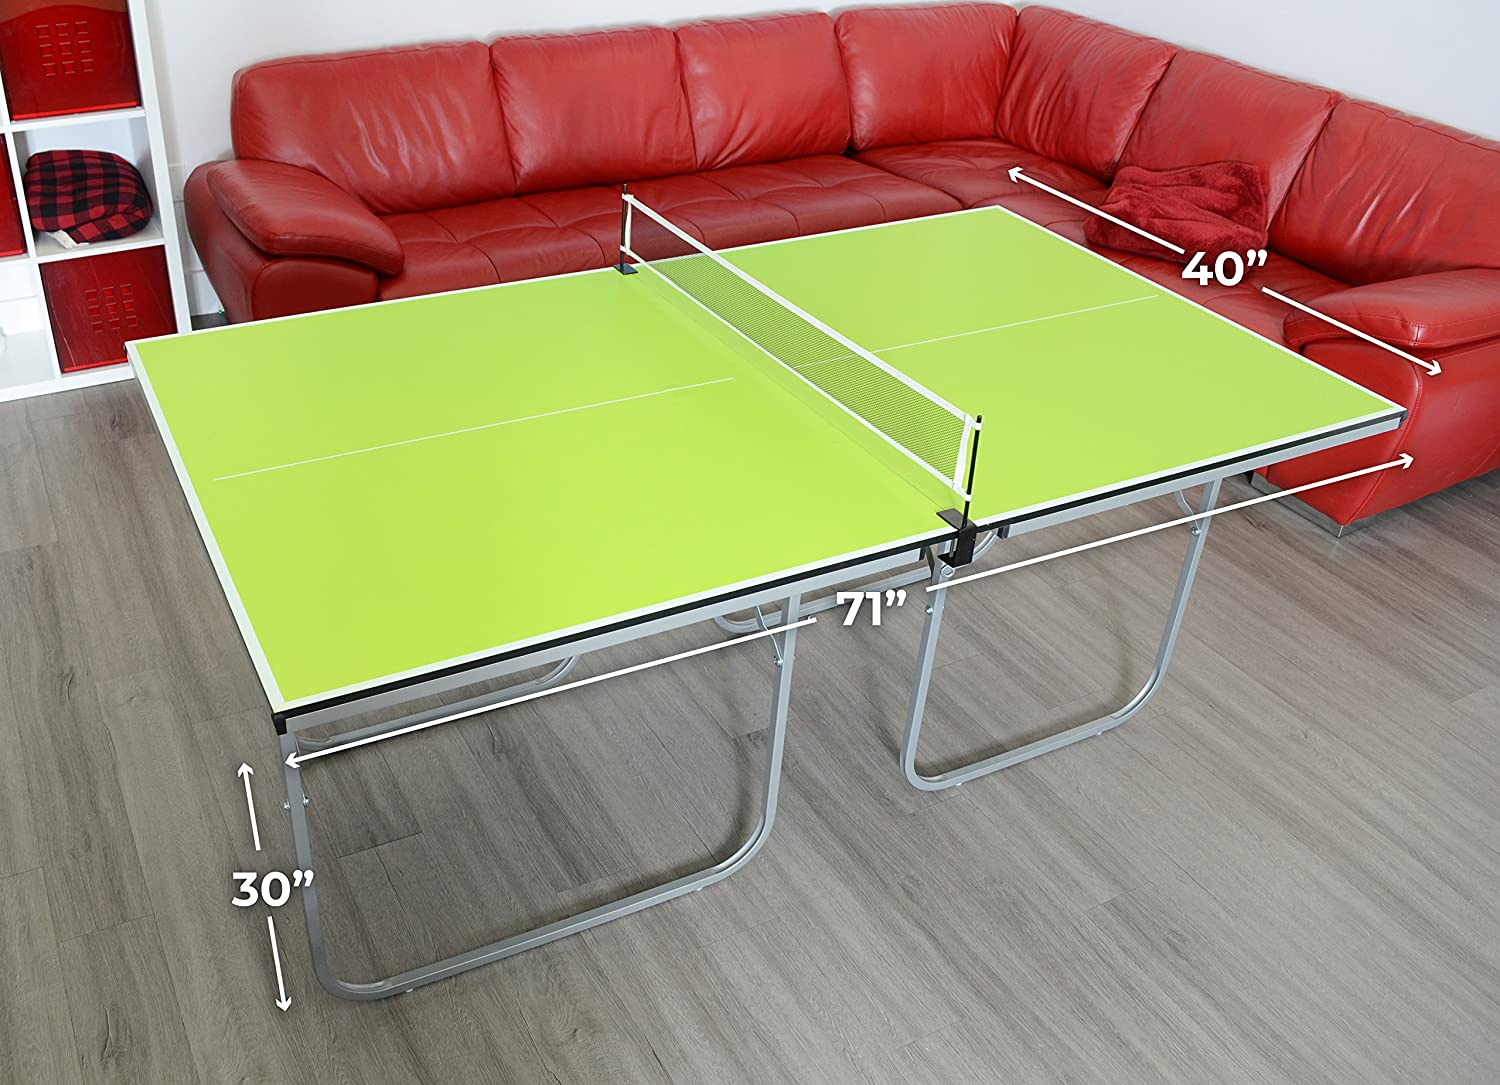 Milliard Mini-Pong Portable Tennis Table